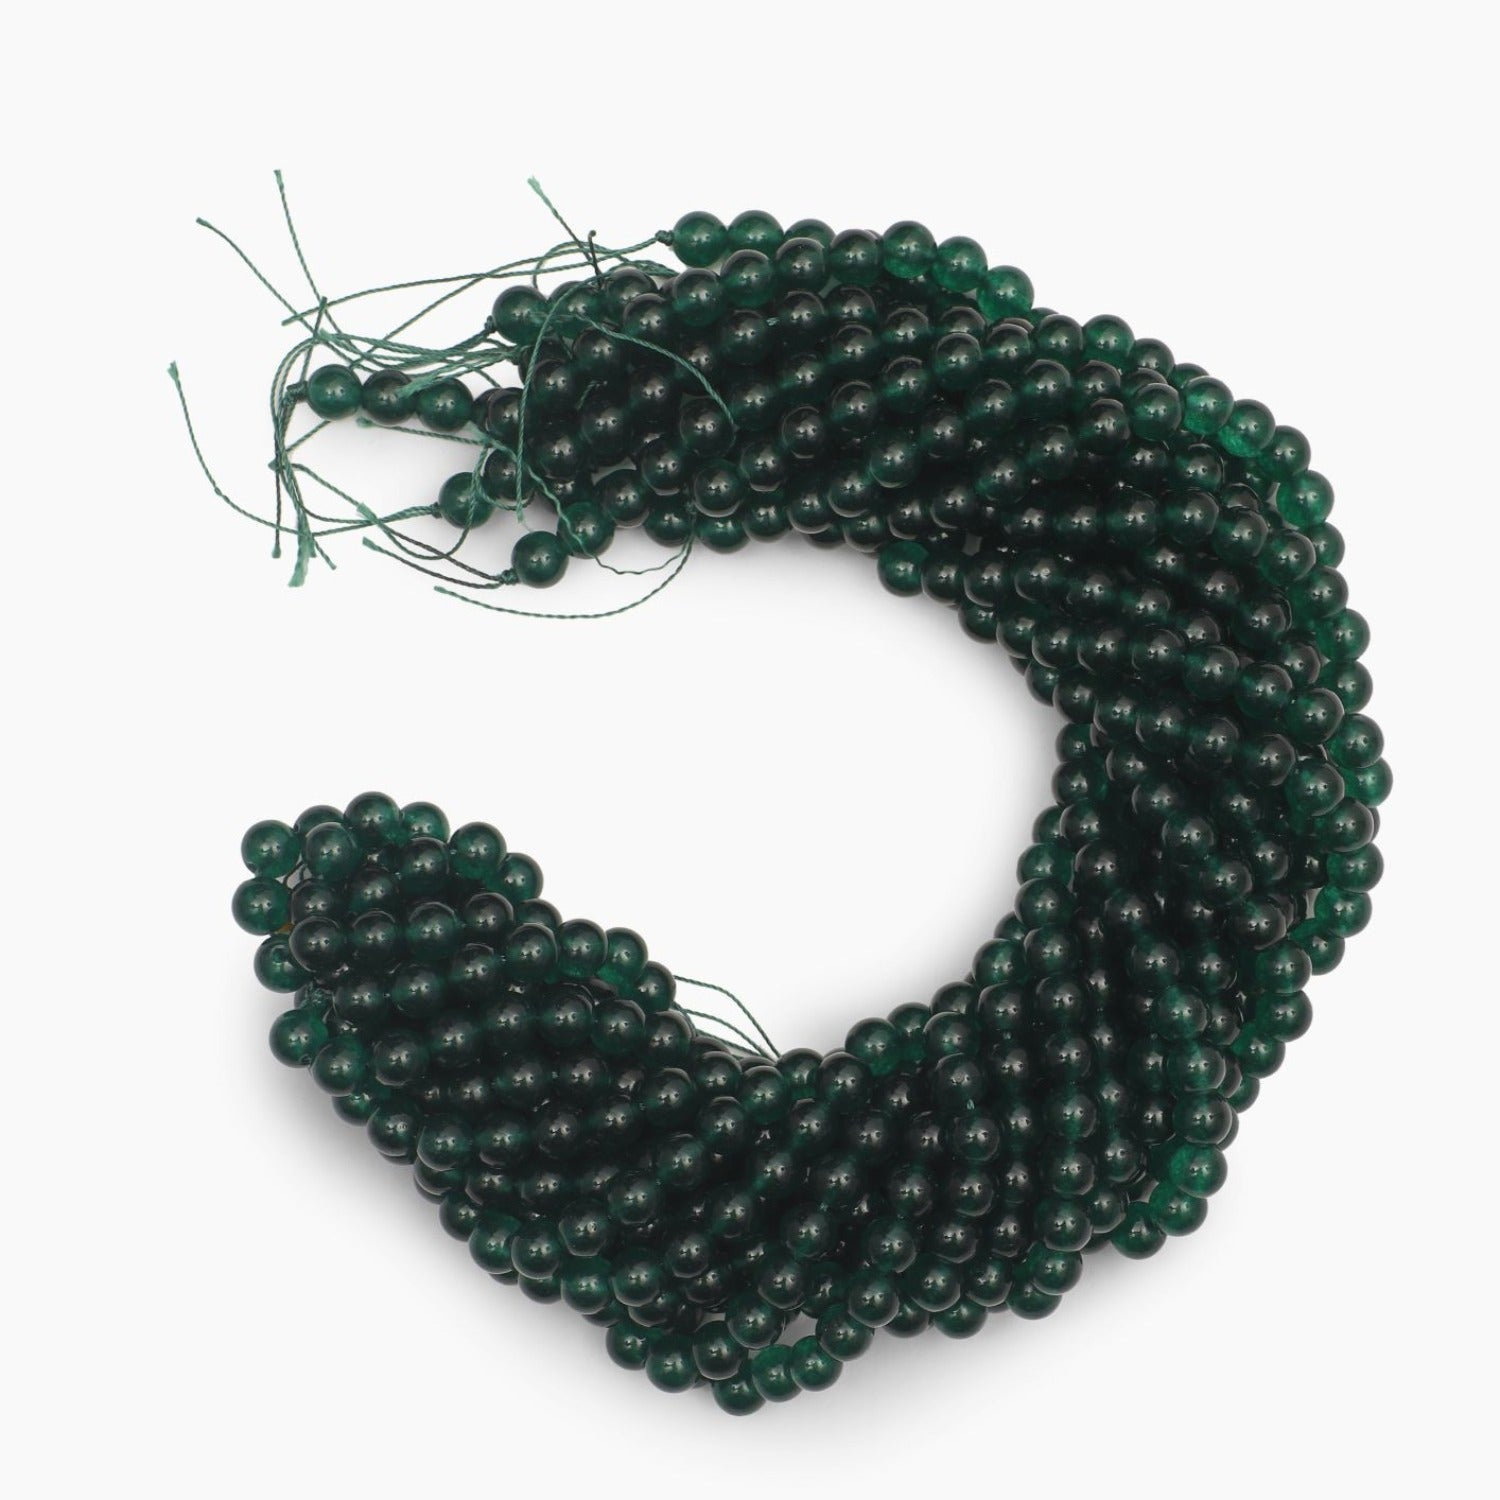 Green Jade Dyed Quartz 8mm Beads- Sold Per Strand